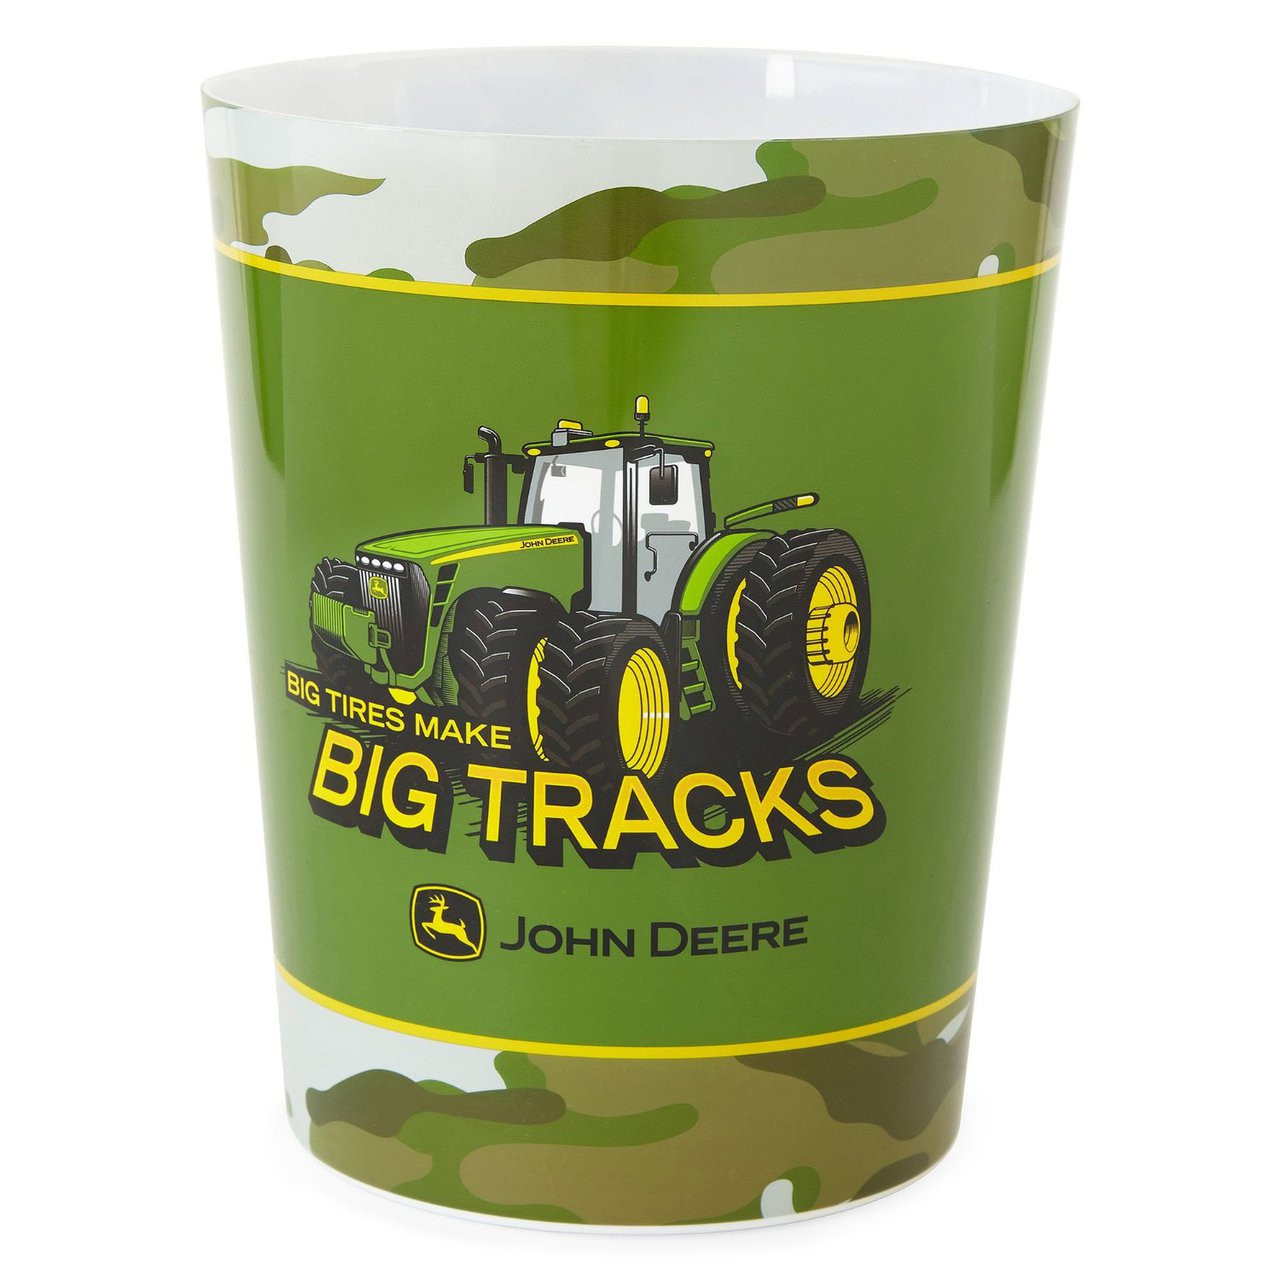 John Deere Bathroom Decor: John Deere Big Tracks Wastebasket, 8 In X 10 In